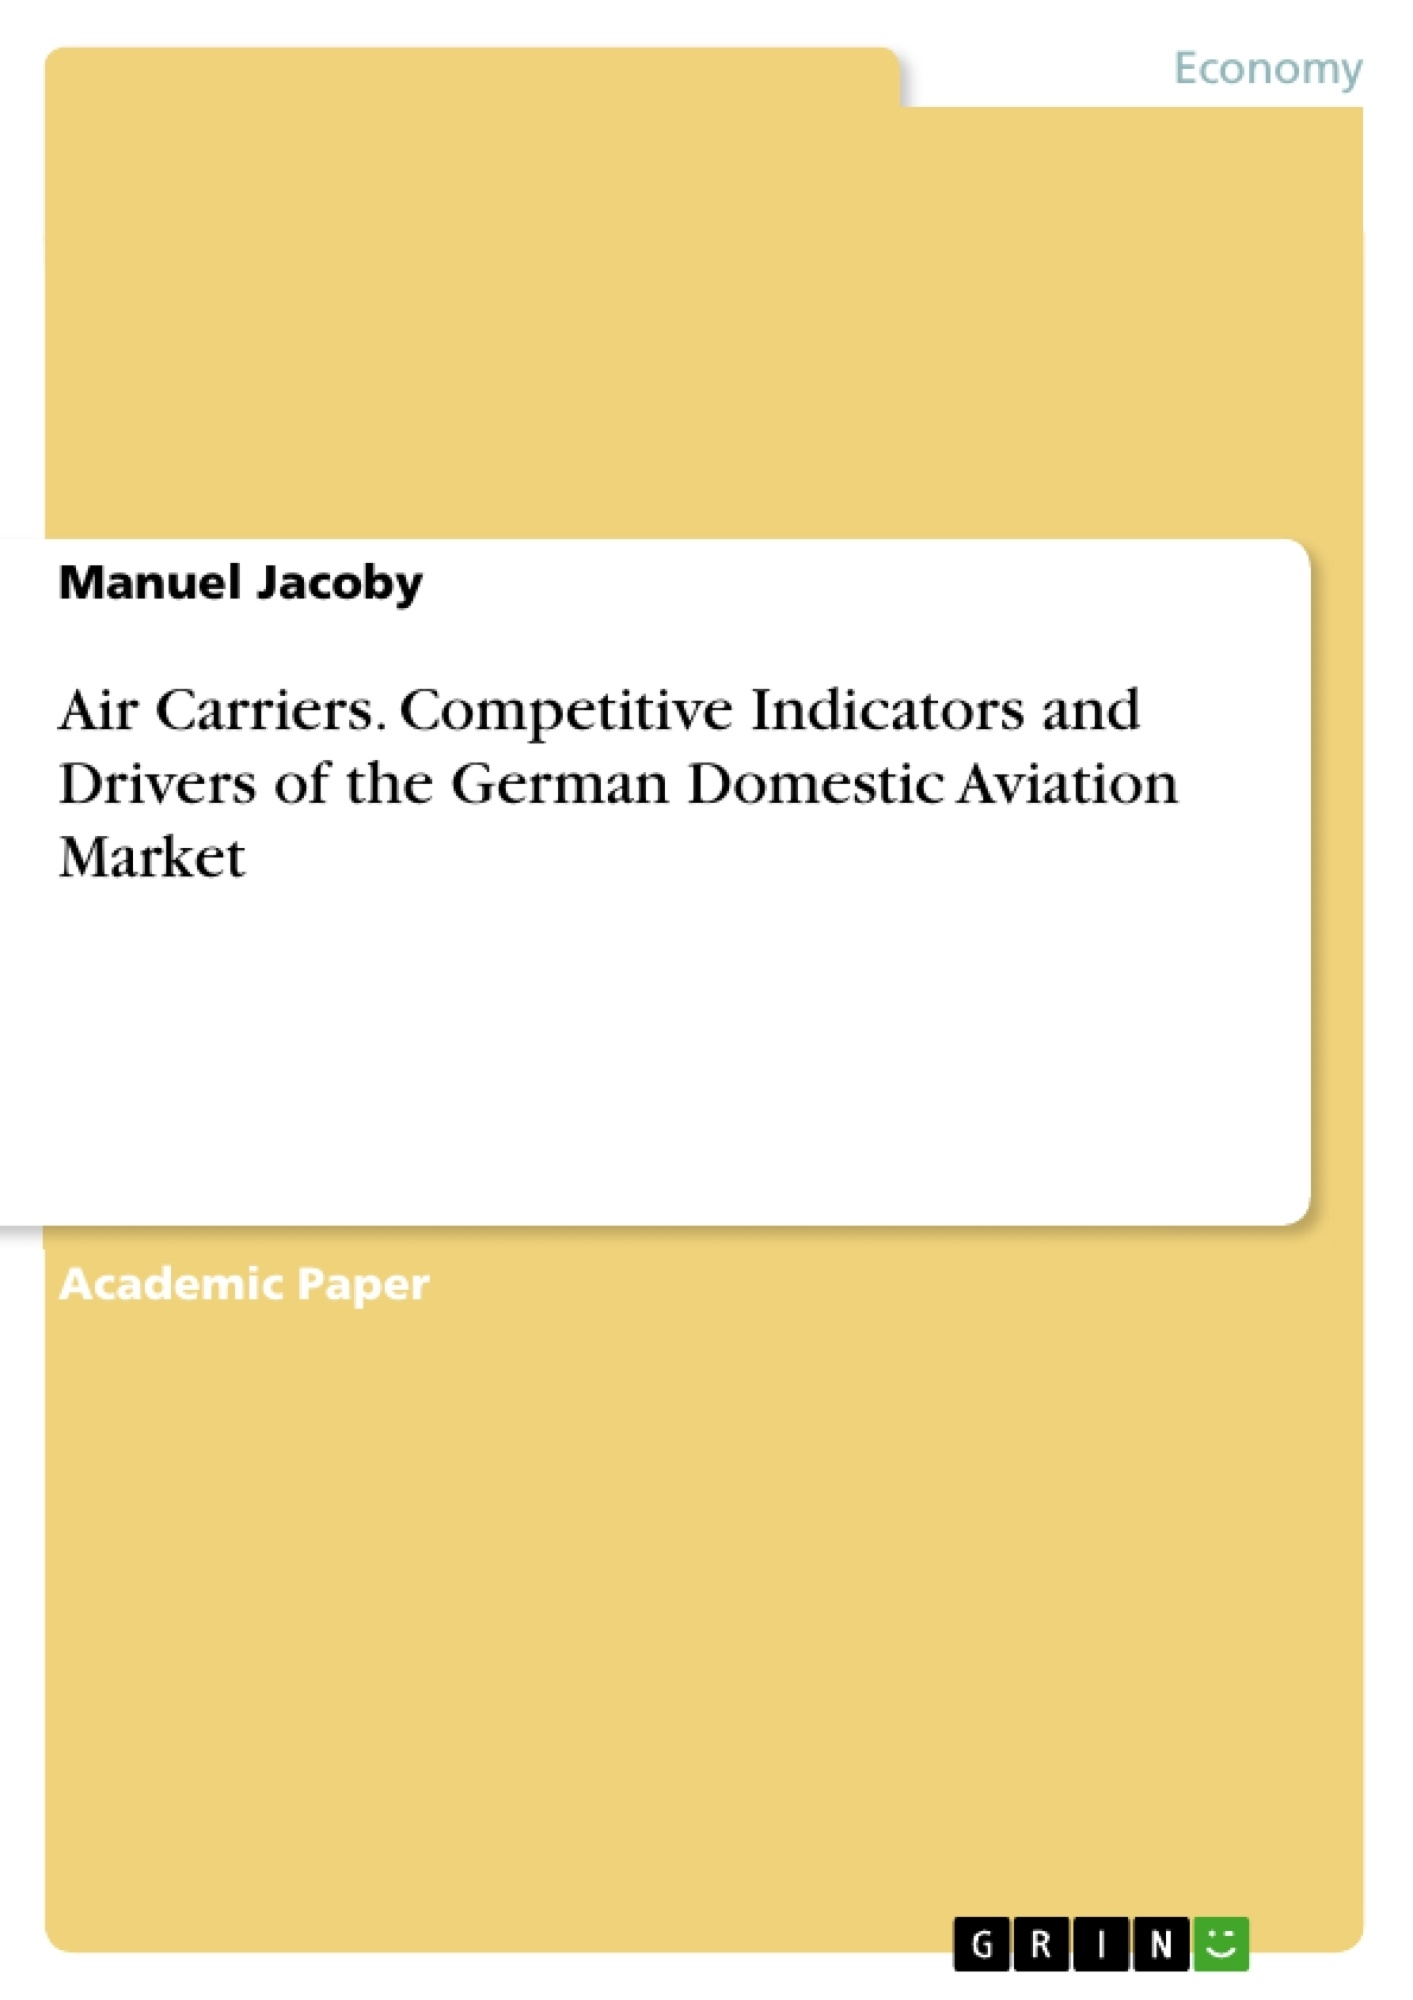 Title: Air Carriers. Competitive Indicators and Drivers of the German Domestic Aviation Market